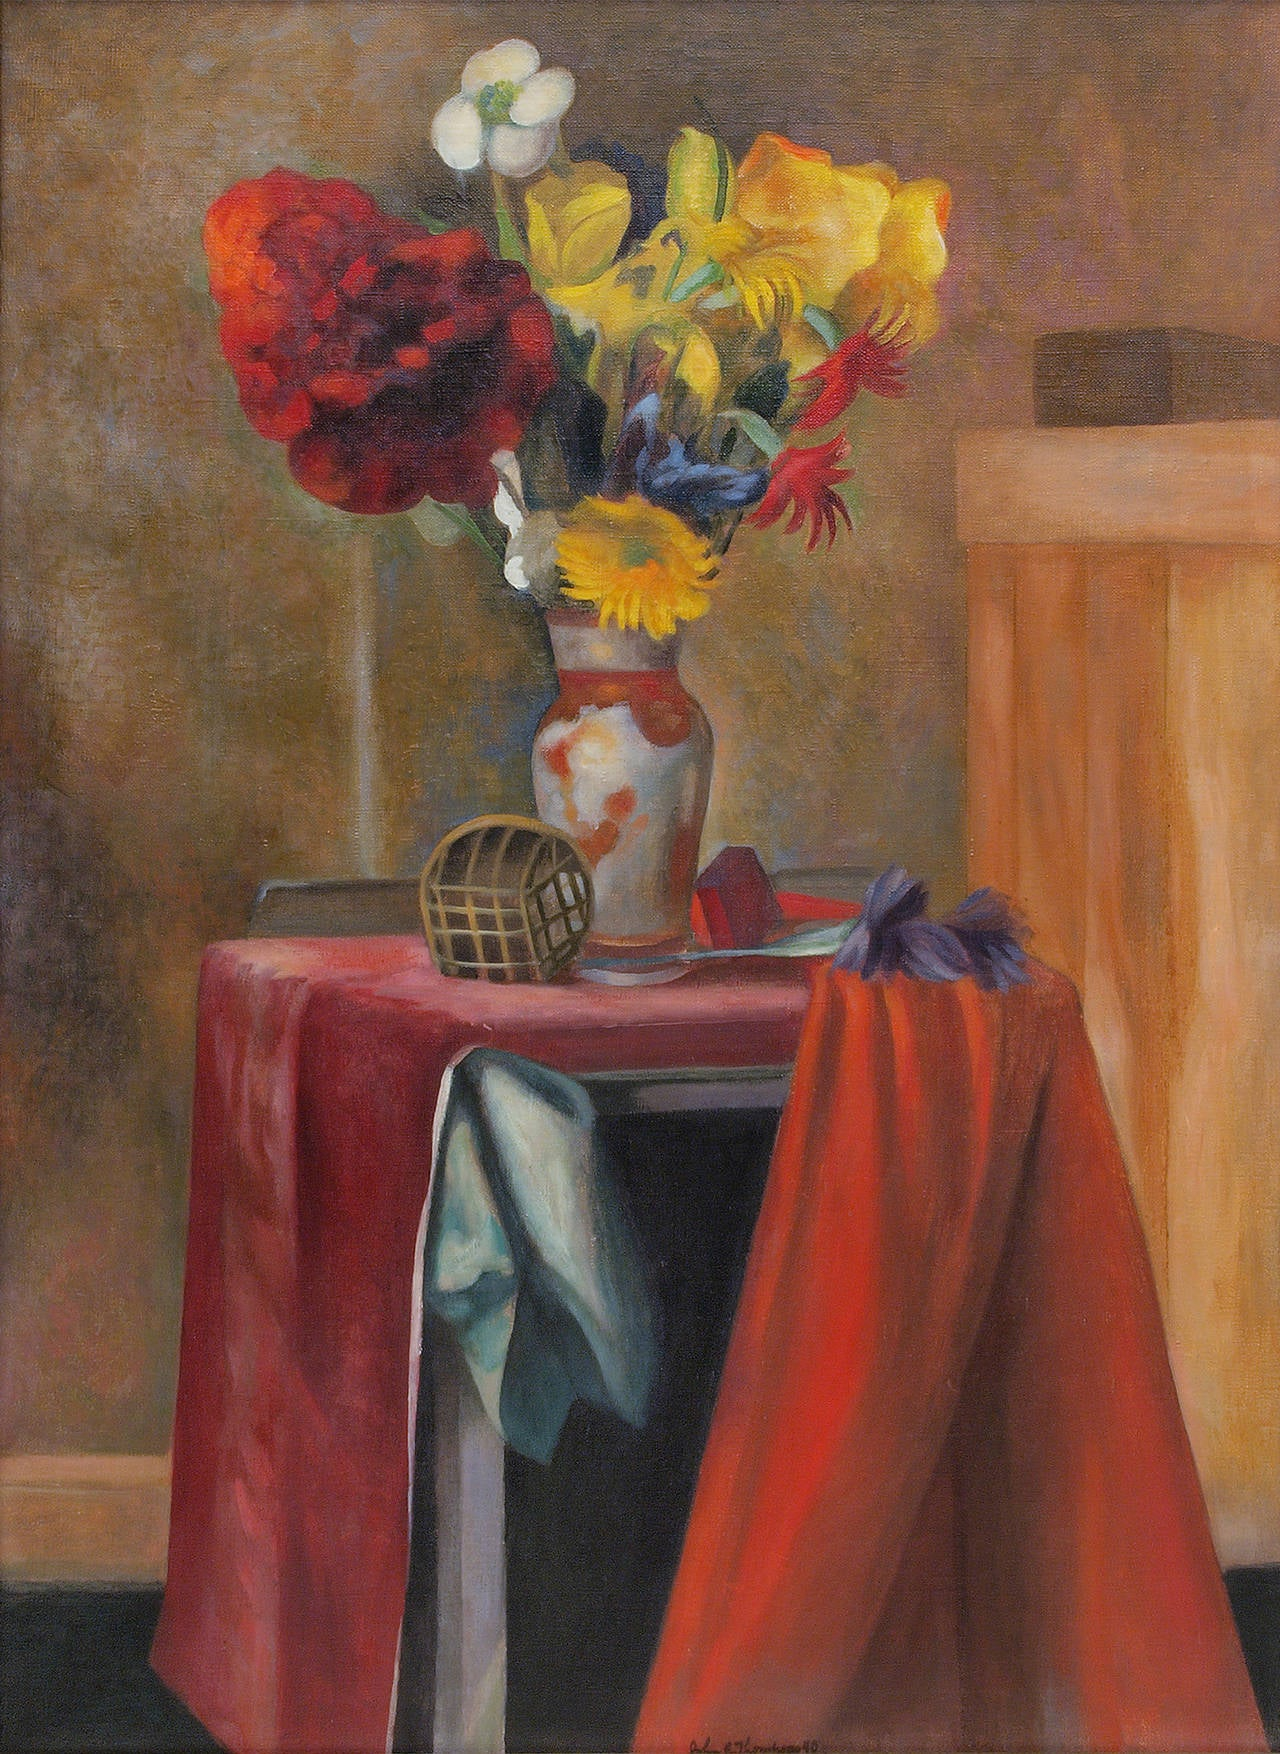 Untitled (Still Life with Flowers) - Painting by John Edward Thompson